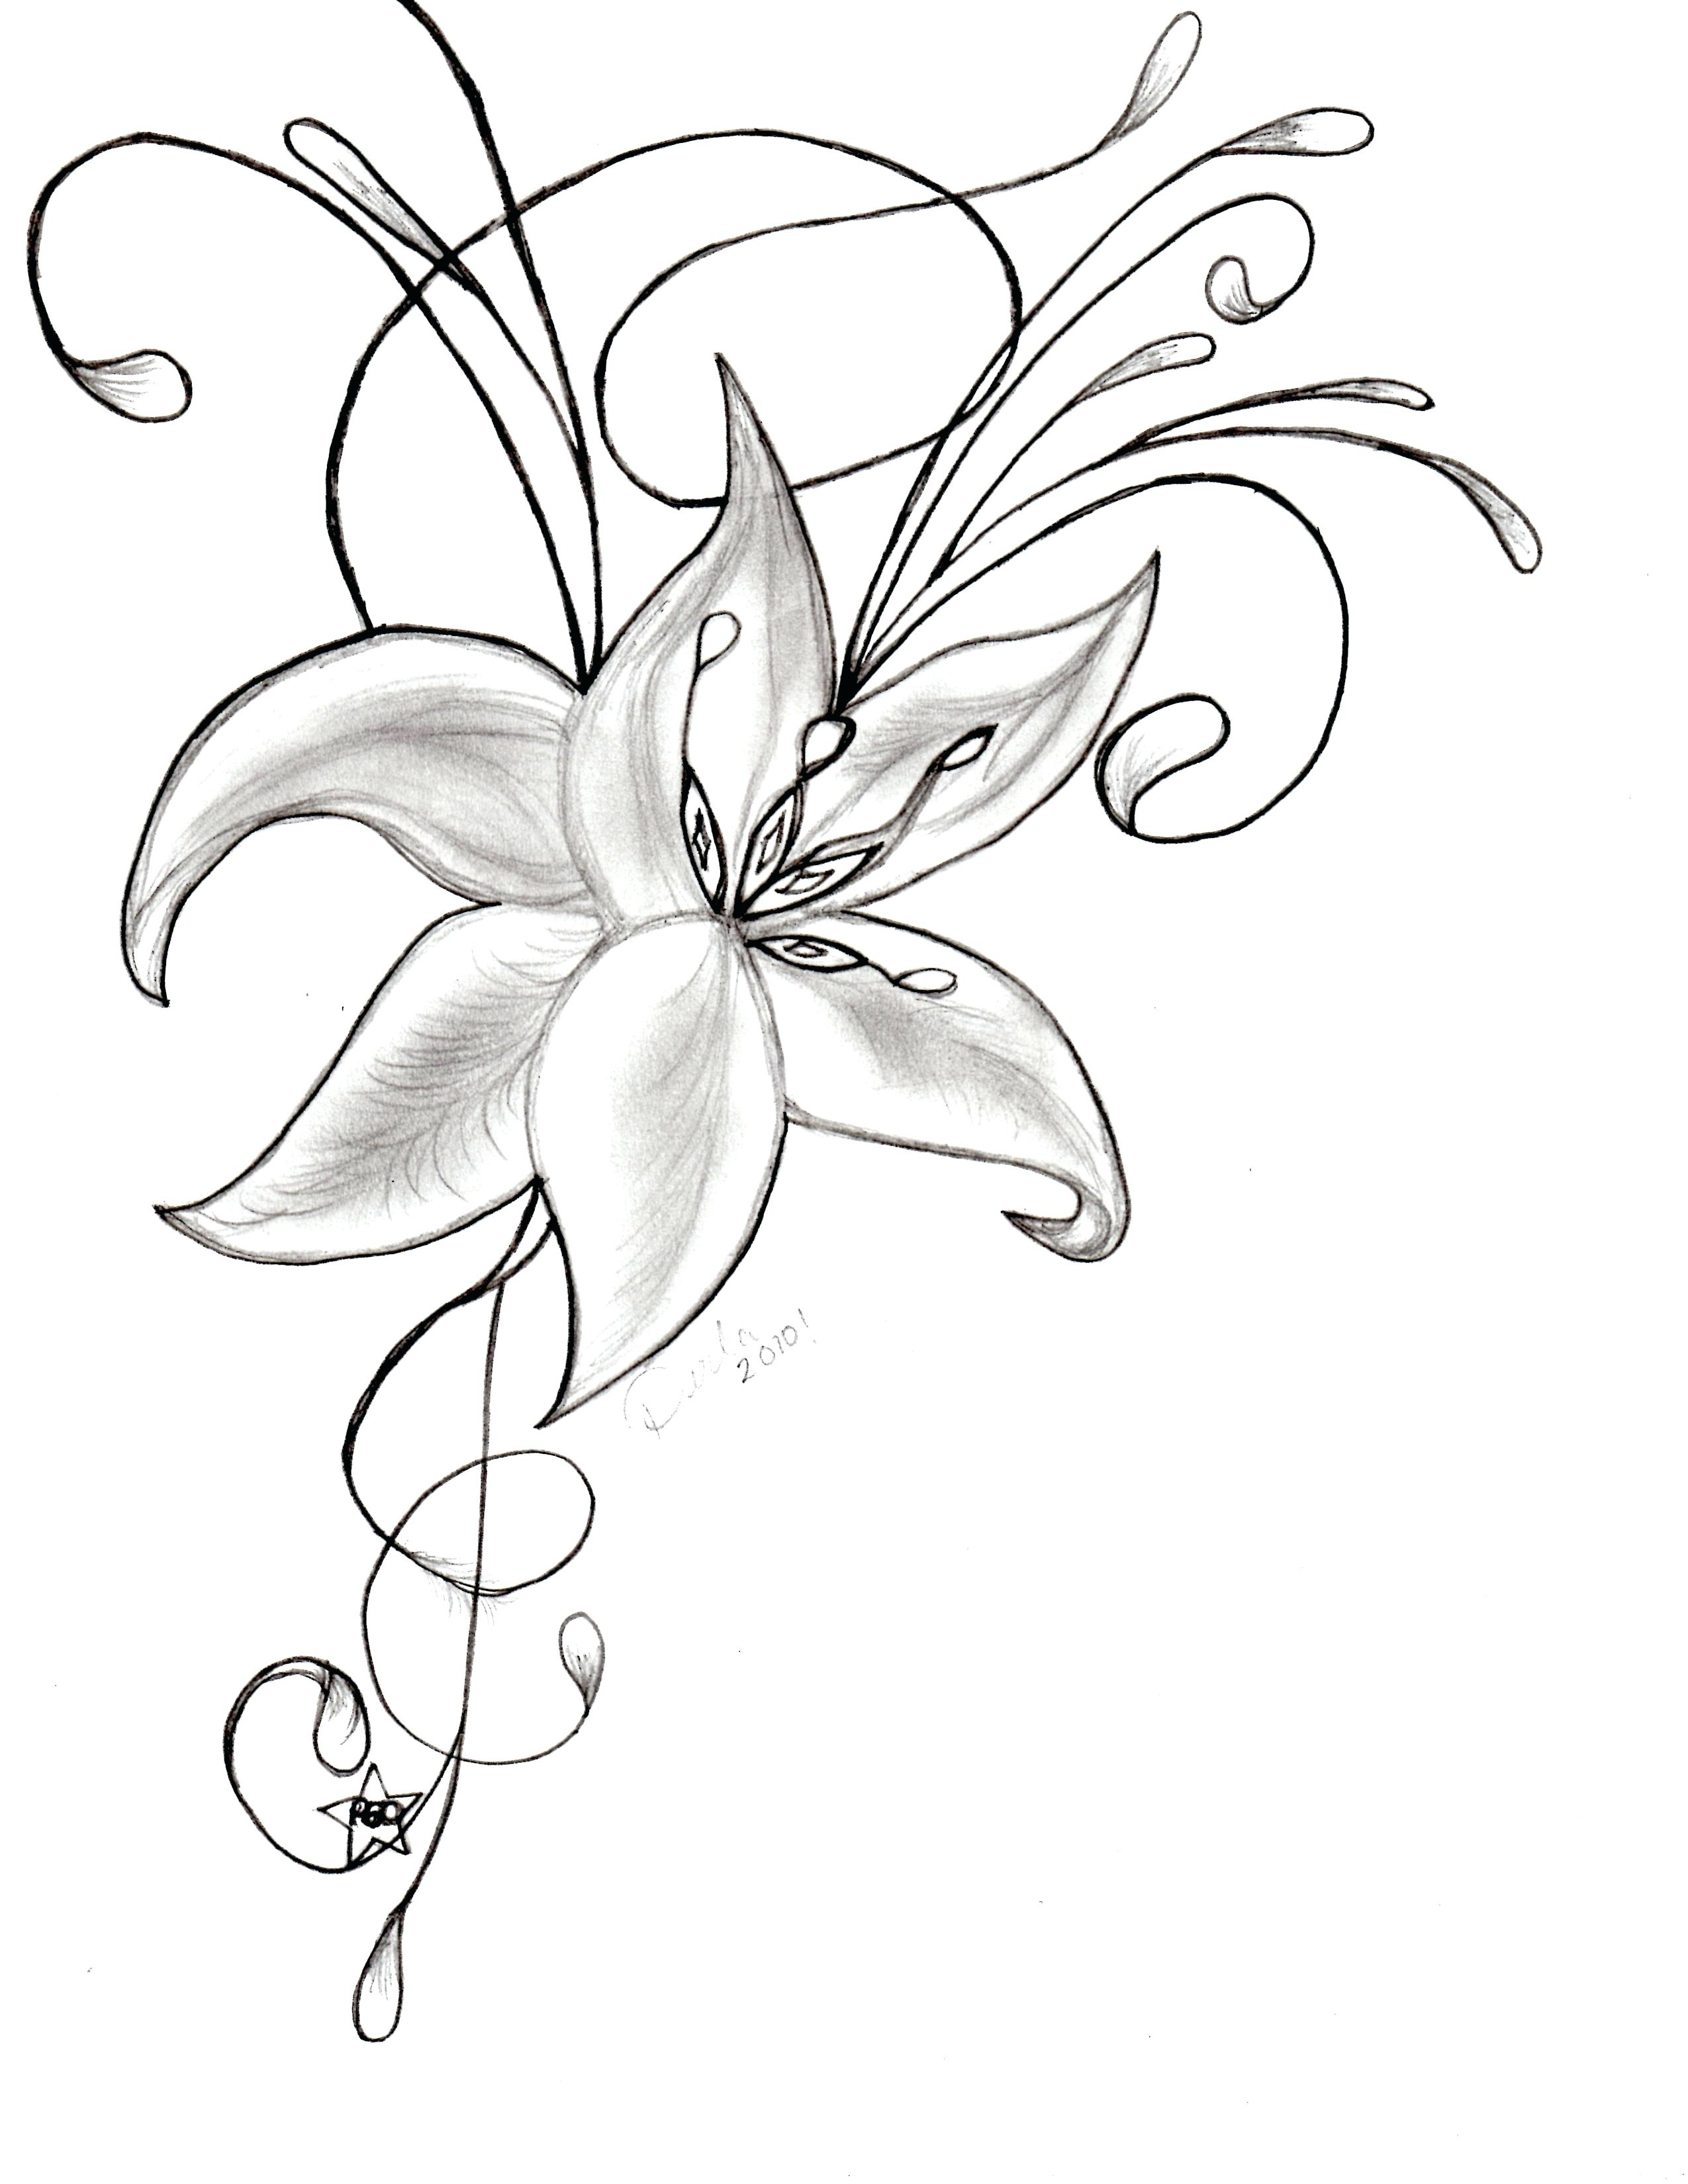 Orchids Drawing at GetDrawings.com | Free for personal use Orchids ...